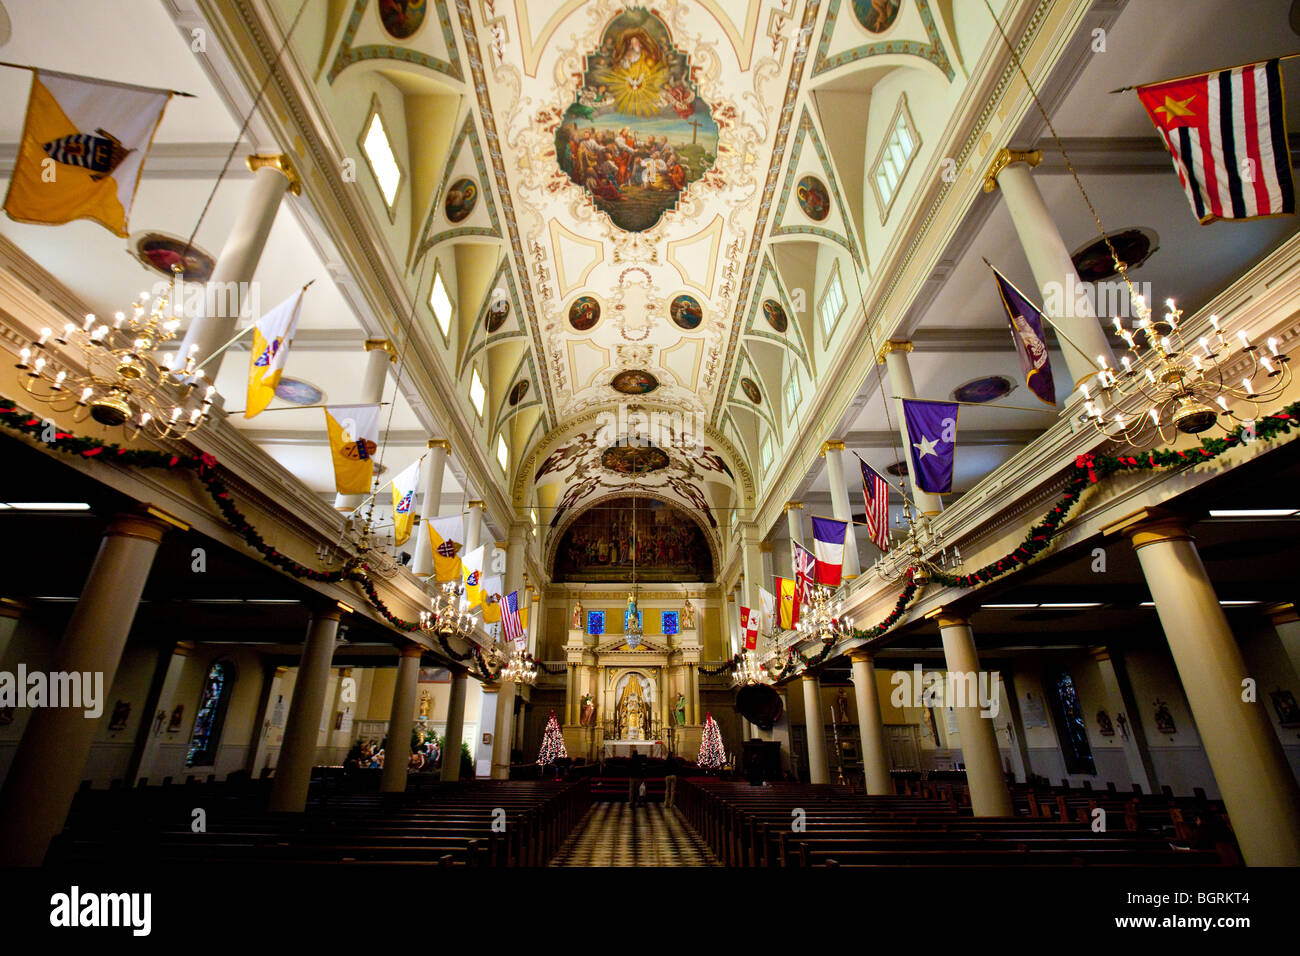 inside the st louis cathedral in the french quarter of new orleans